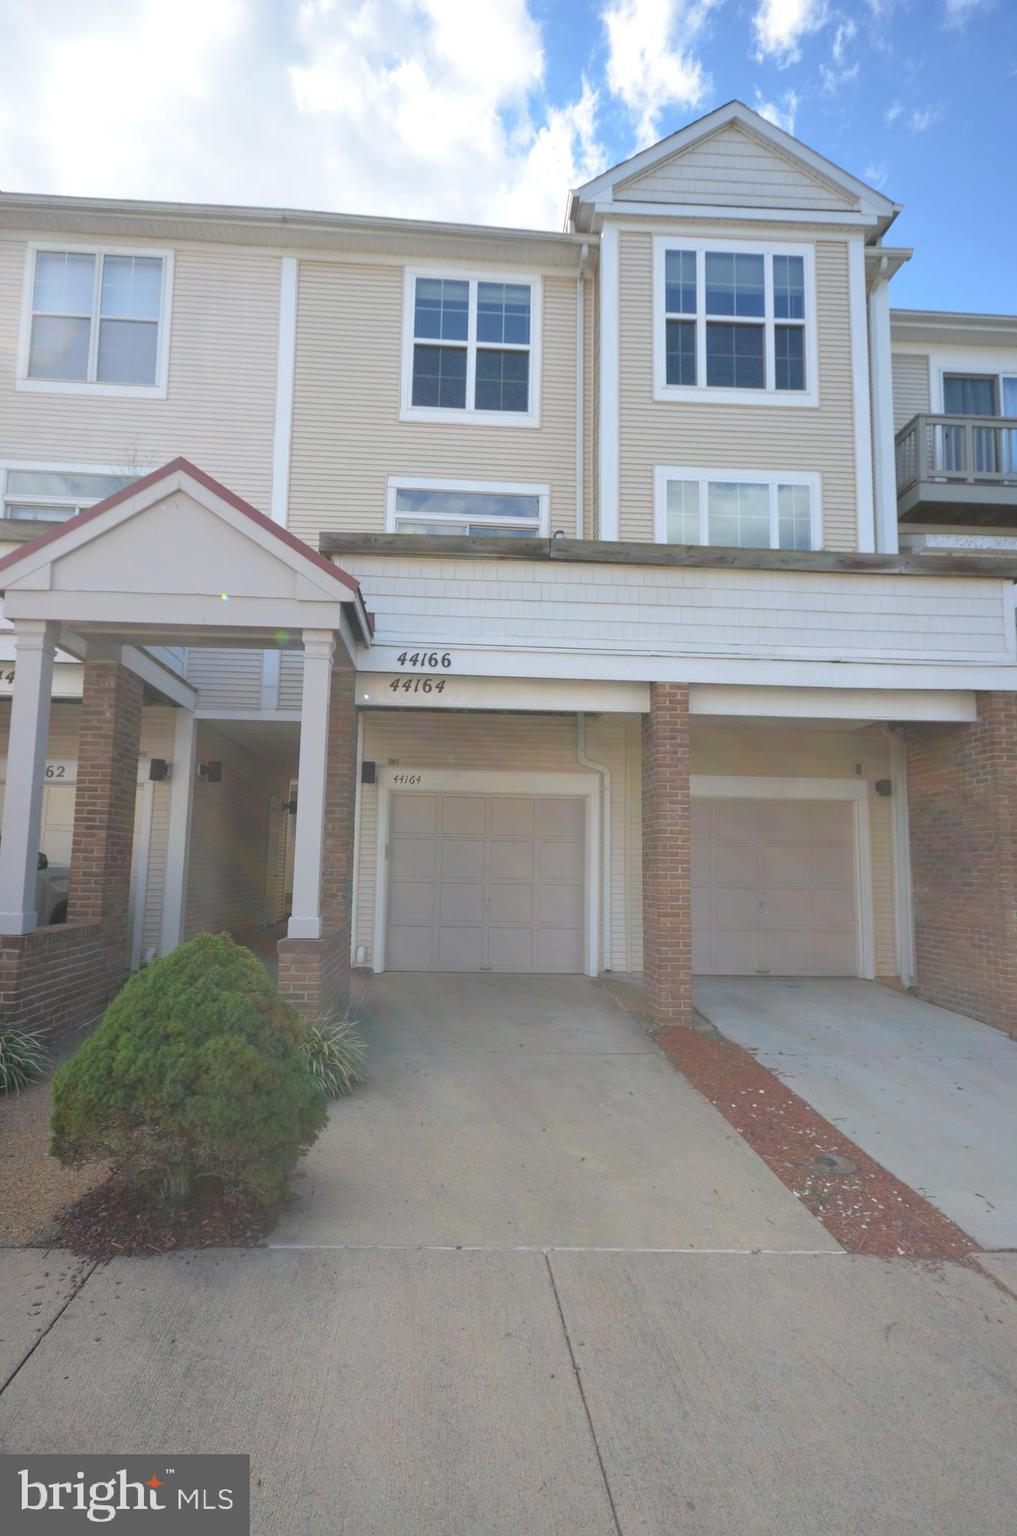 Townhome (not a condo) in the heart of Ashburn Village. 3 bedrooms, 2.5 baths. Great location, acros